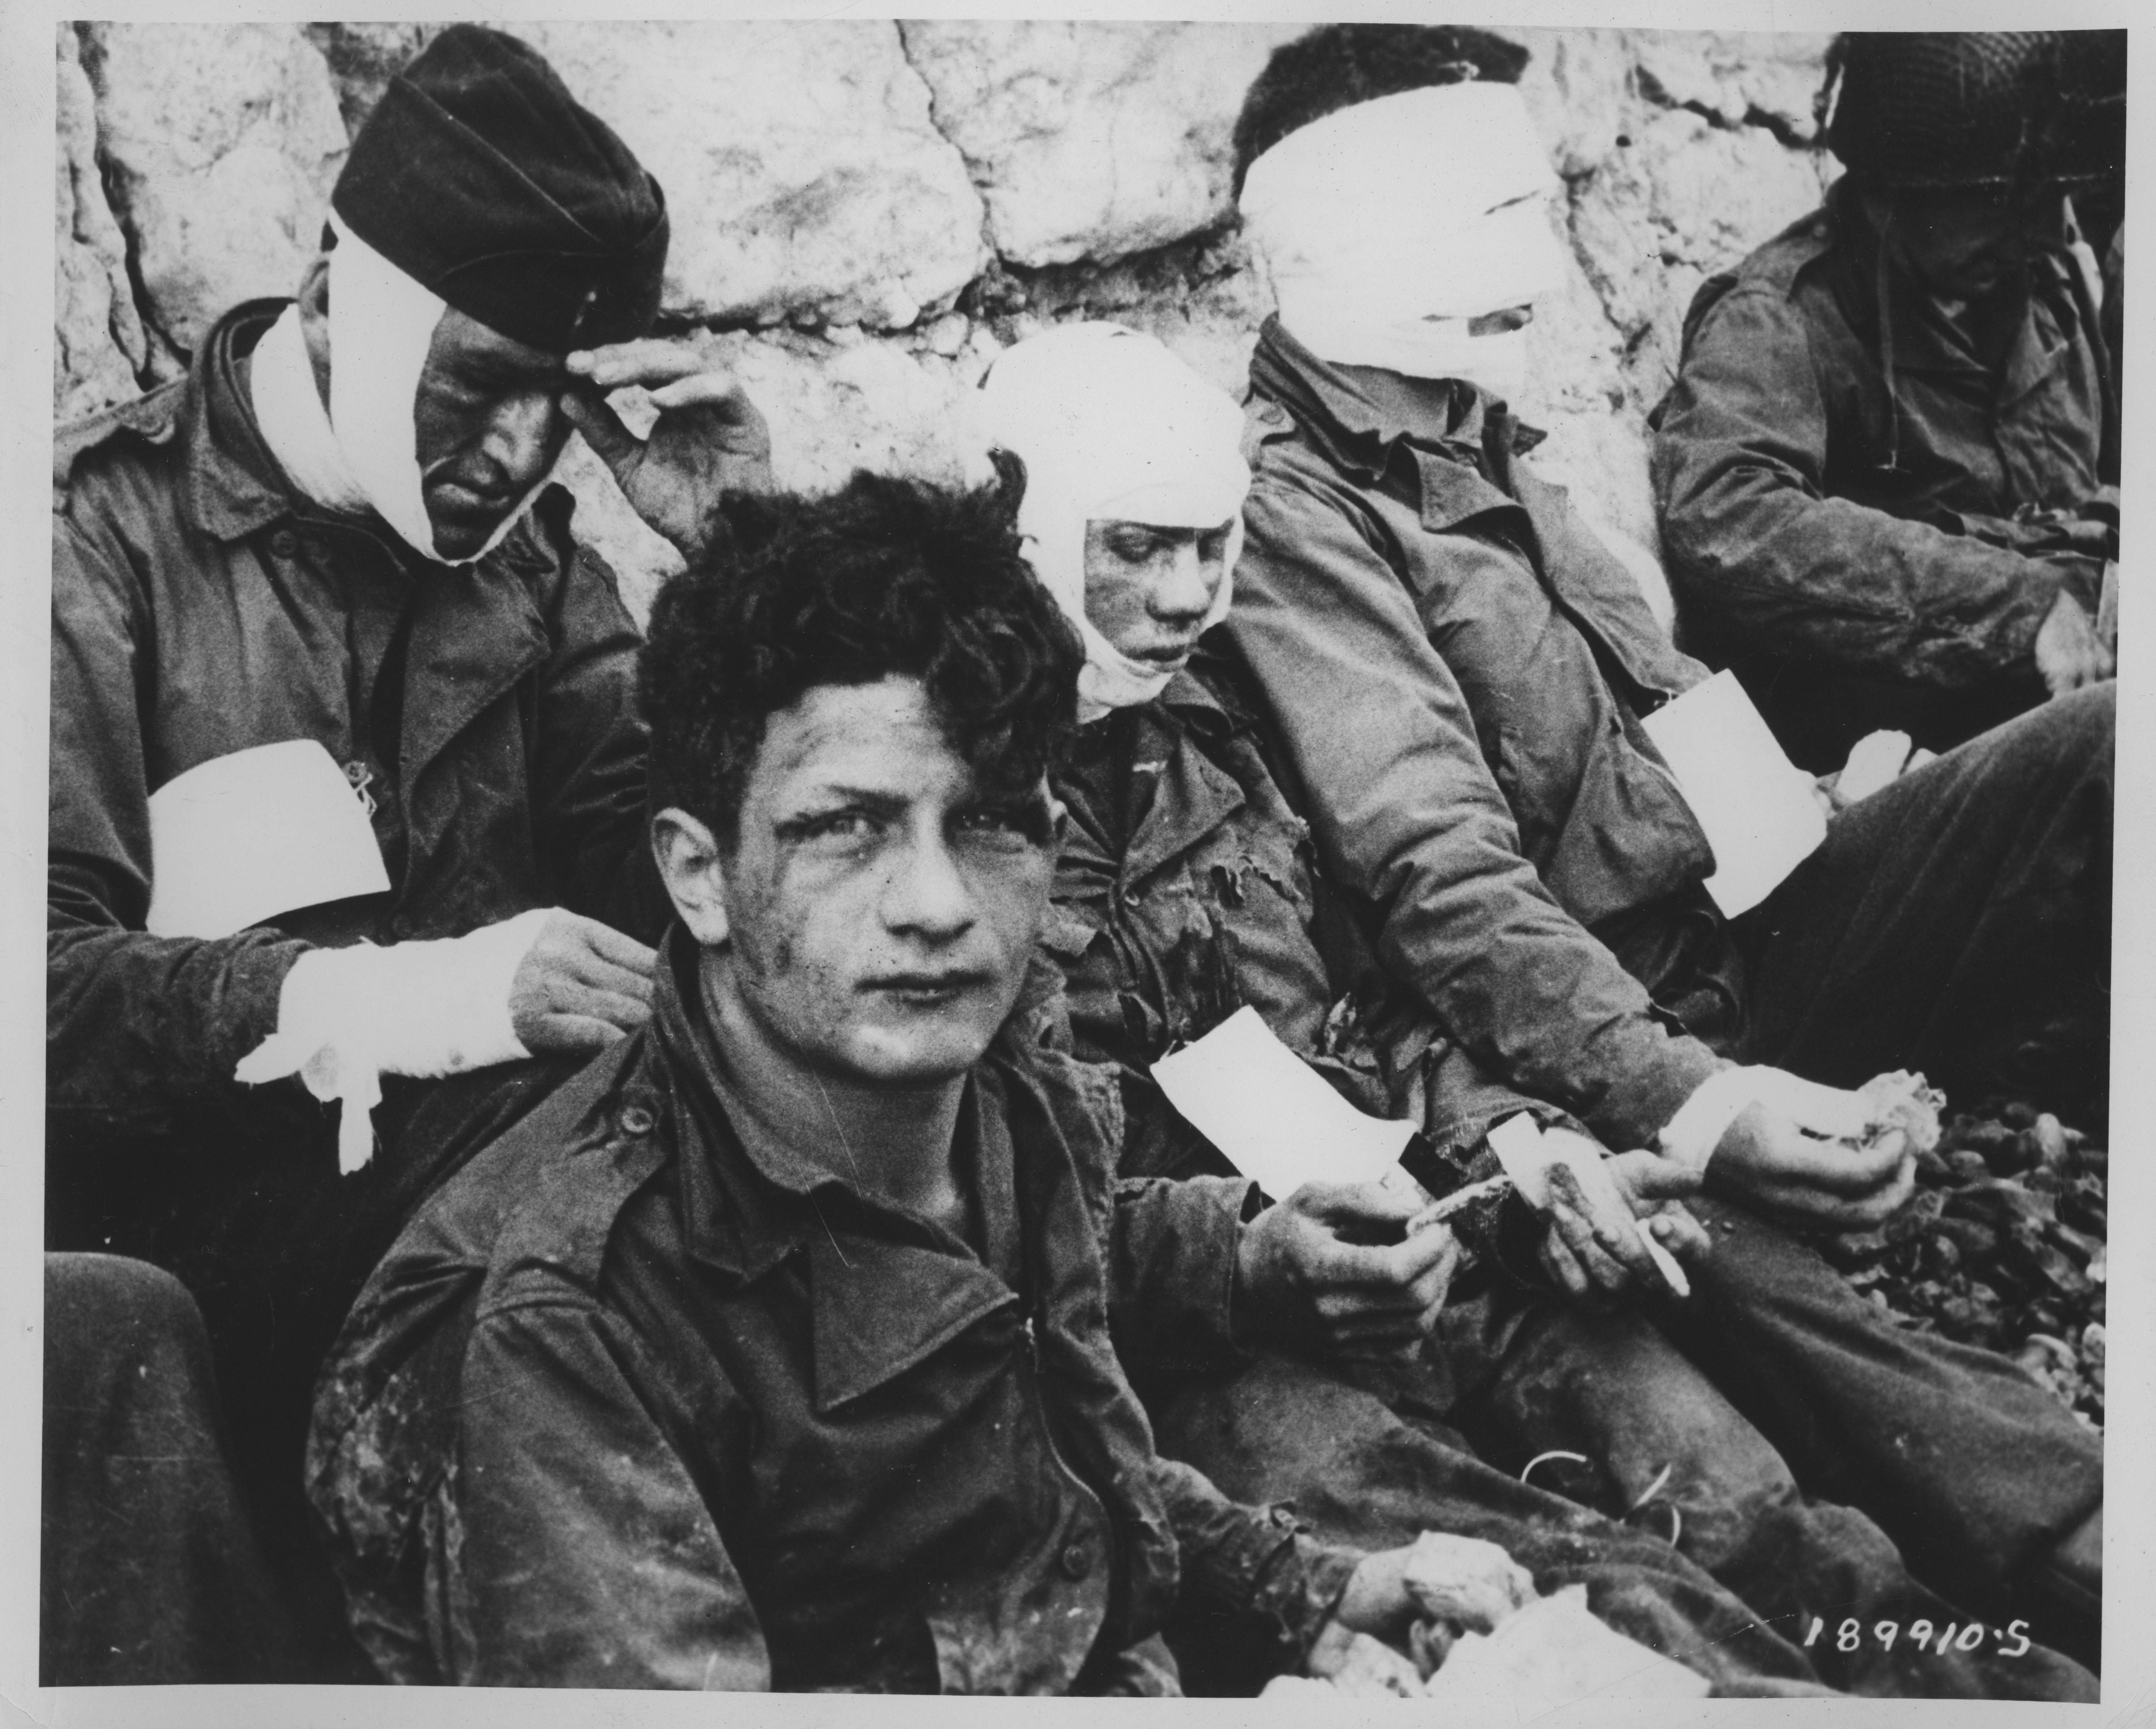 Assault troops of the 3rd Battalion, 16th Infantry, wounded on Omaha Beach, wait by the chalk cliffs for further medical treatment.